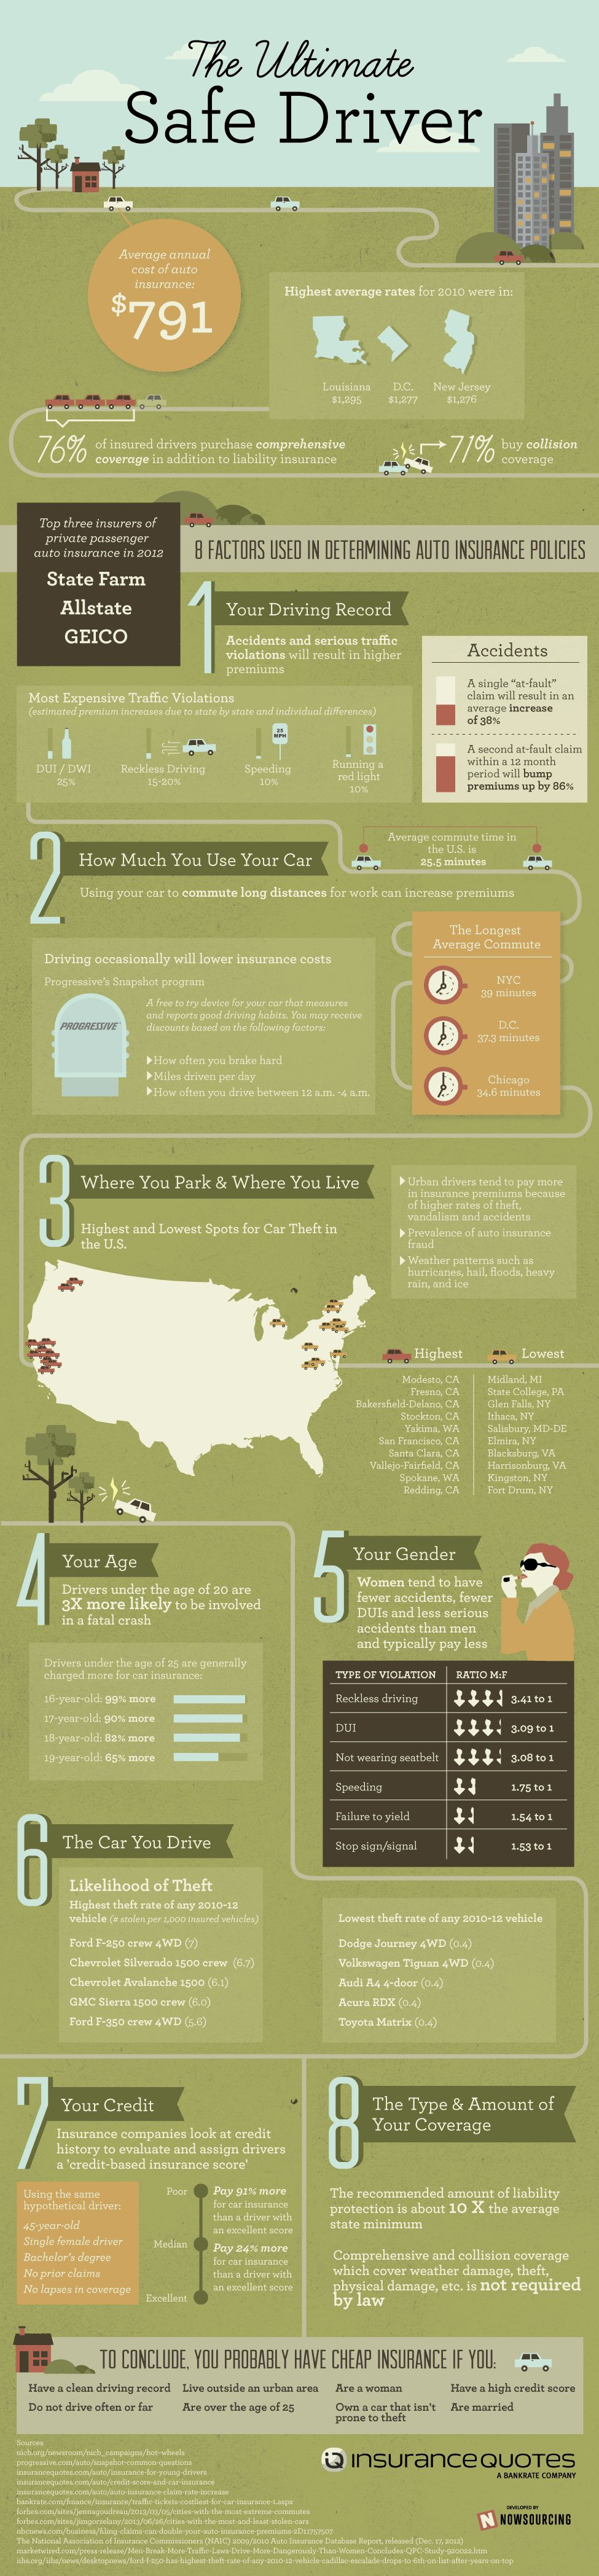 the ultimate safe driver infographic